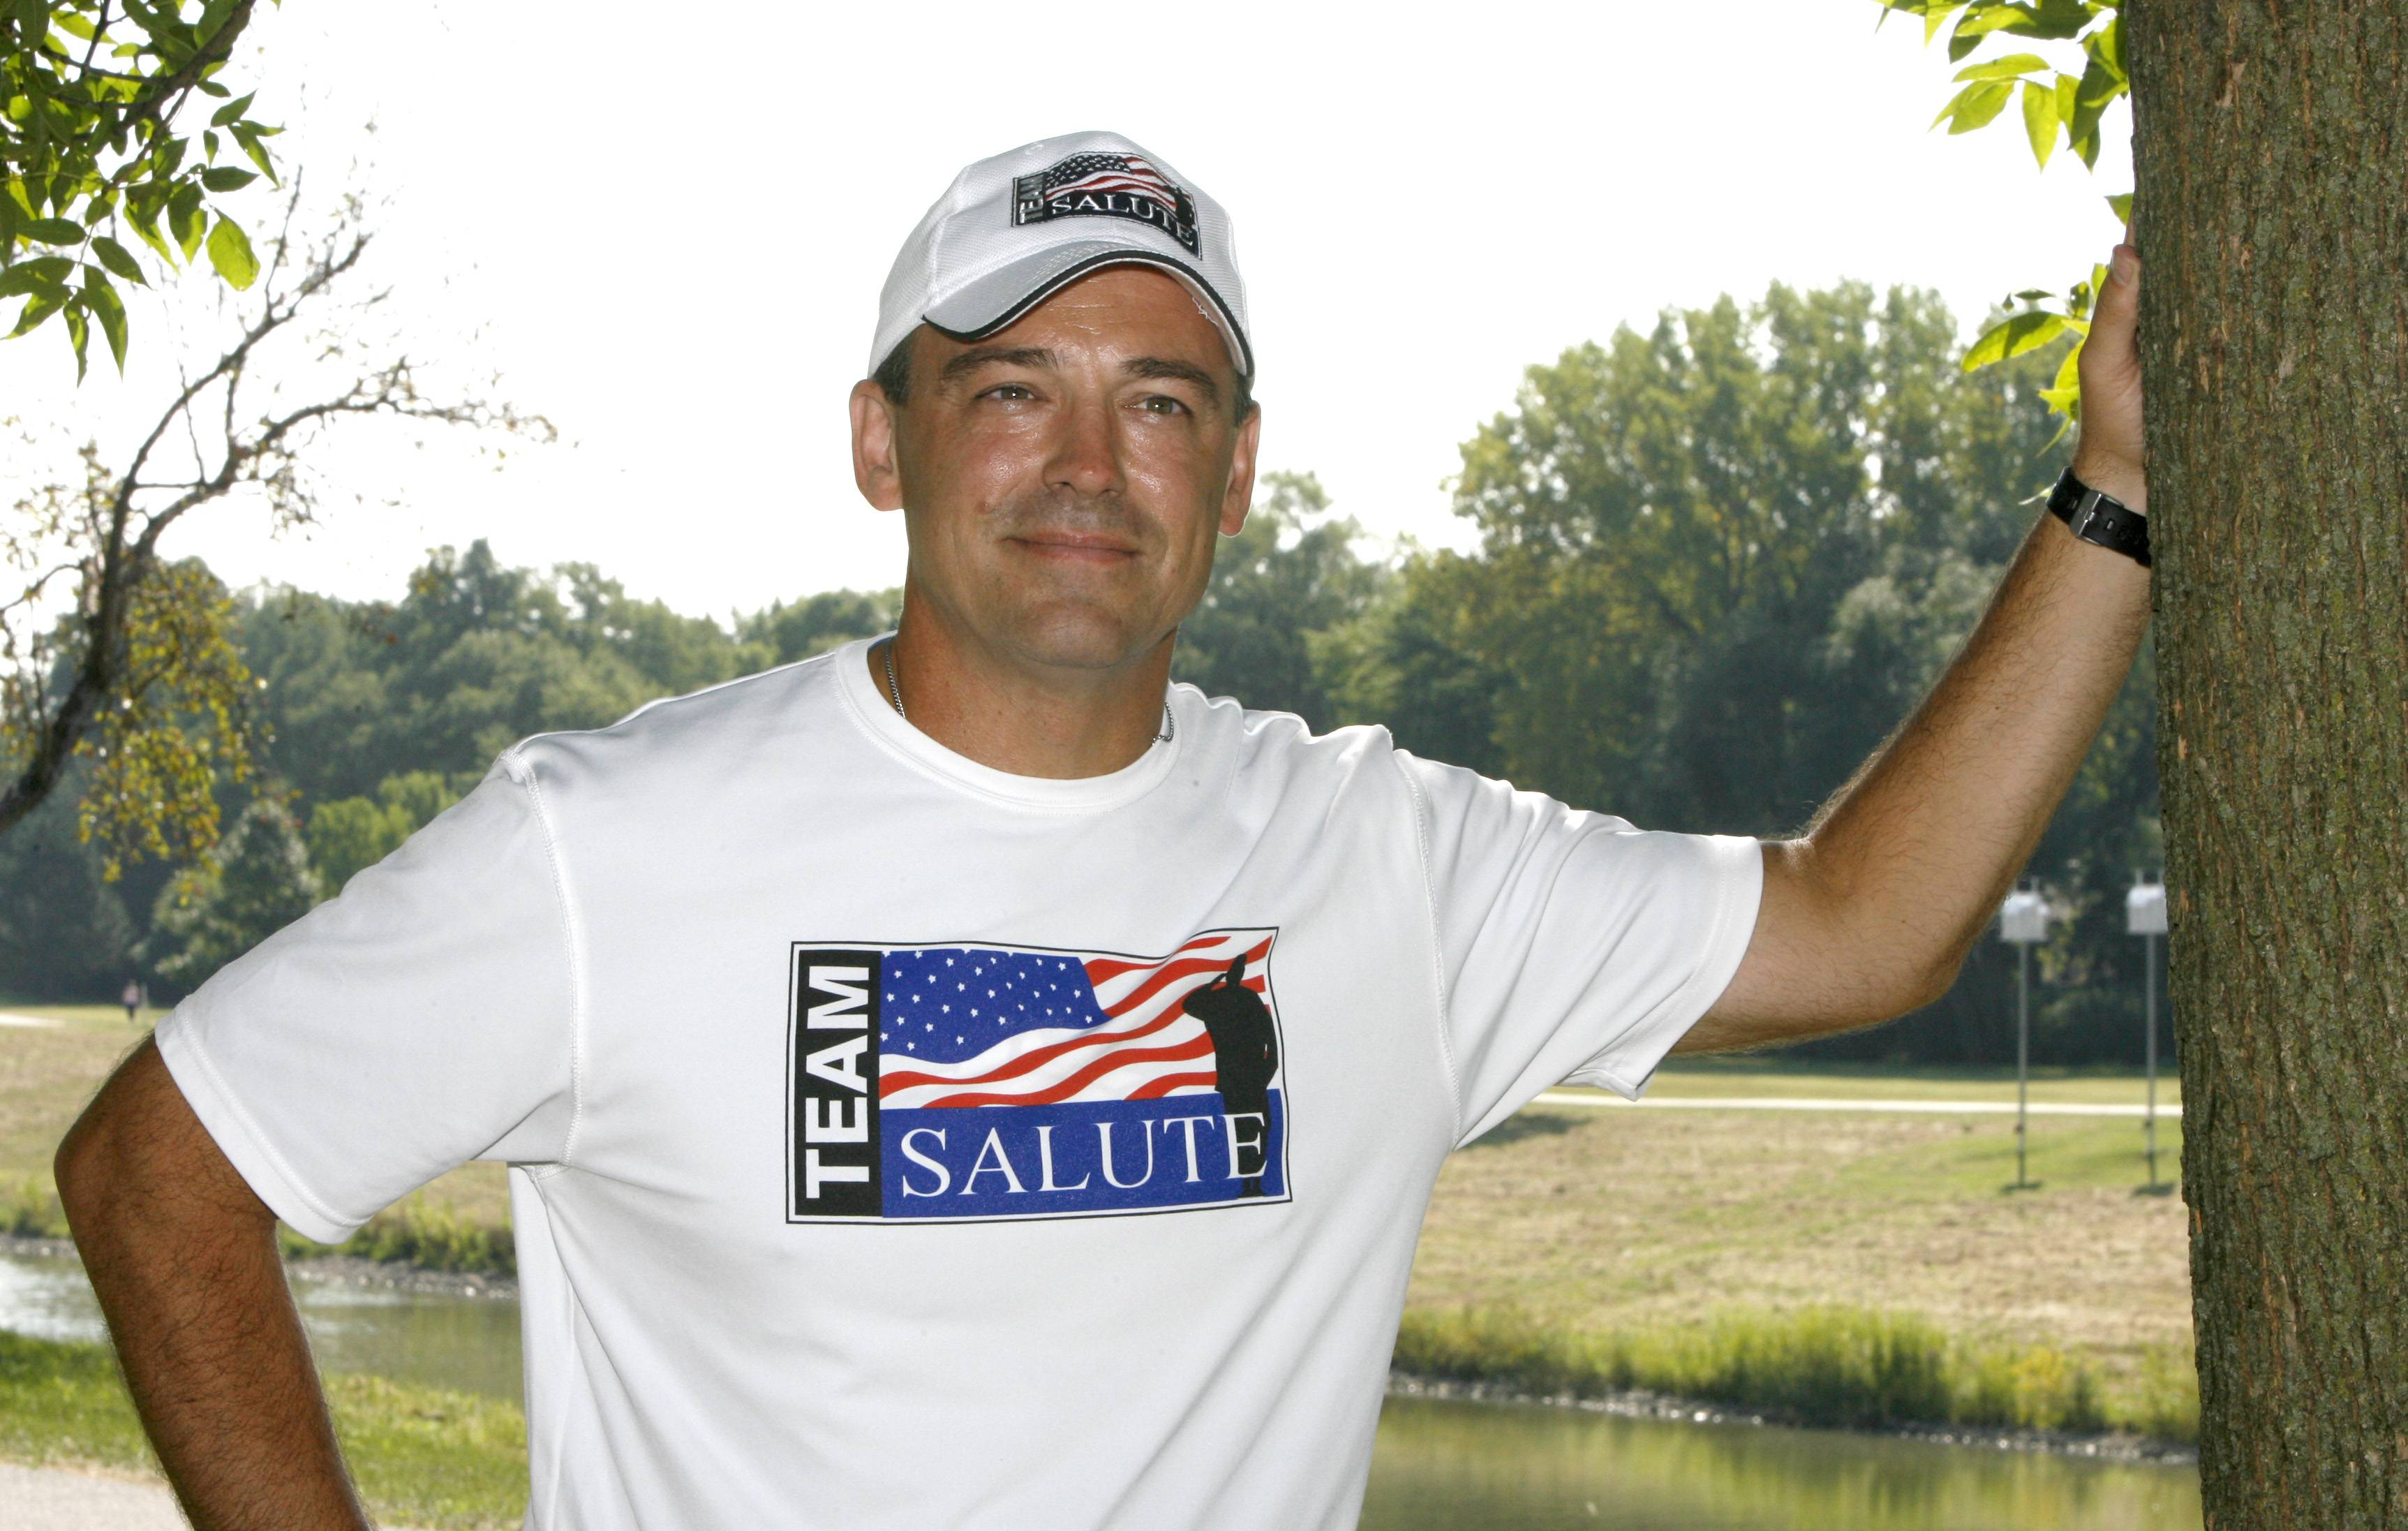 Will Beiersdorf founded Palatine-based Salute Inc. in 2003 to help out fellow veterans financially. Today he serves as executive director of the Road Home Program at Rush University Medical Center. It provides a range of services to veterans and their family members.